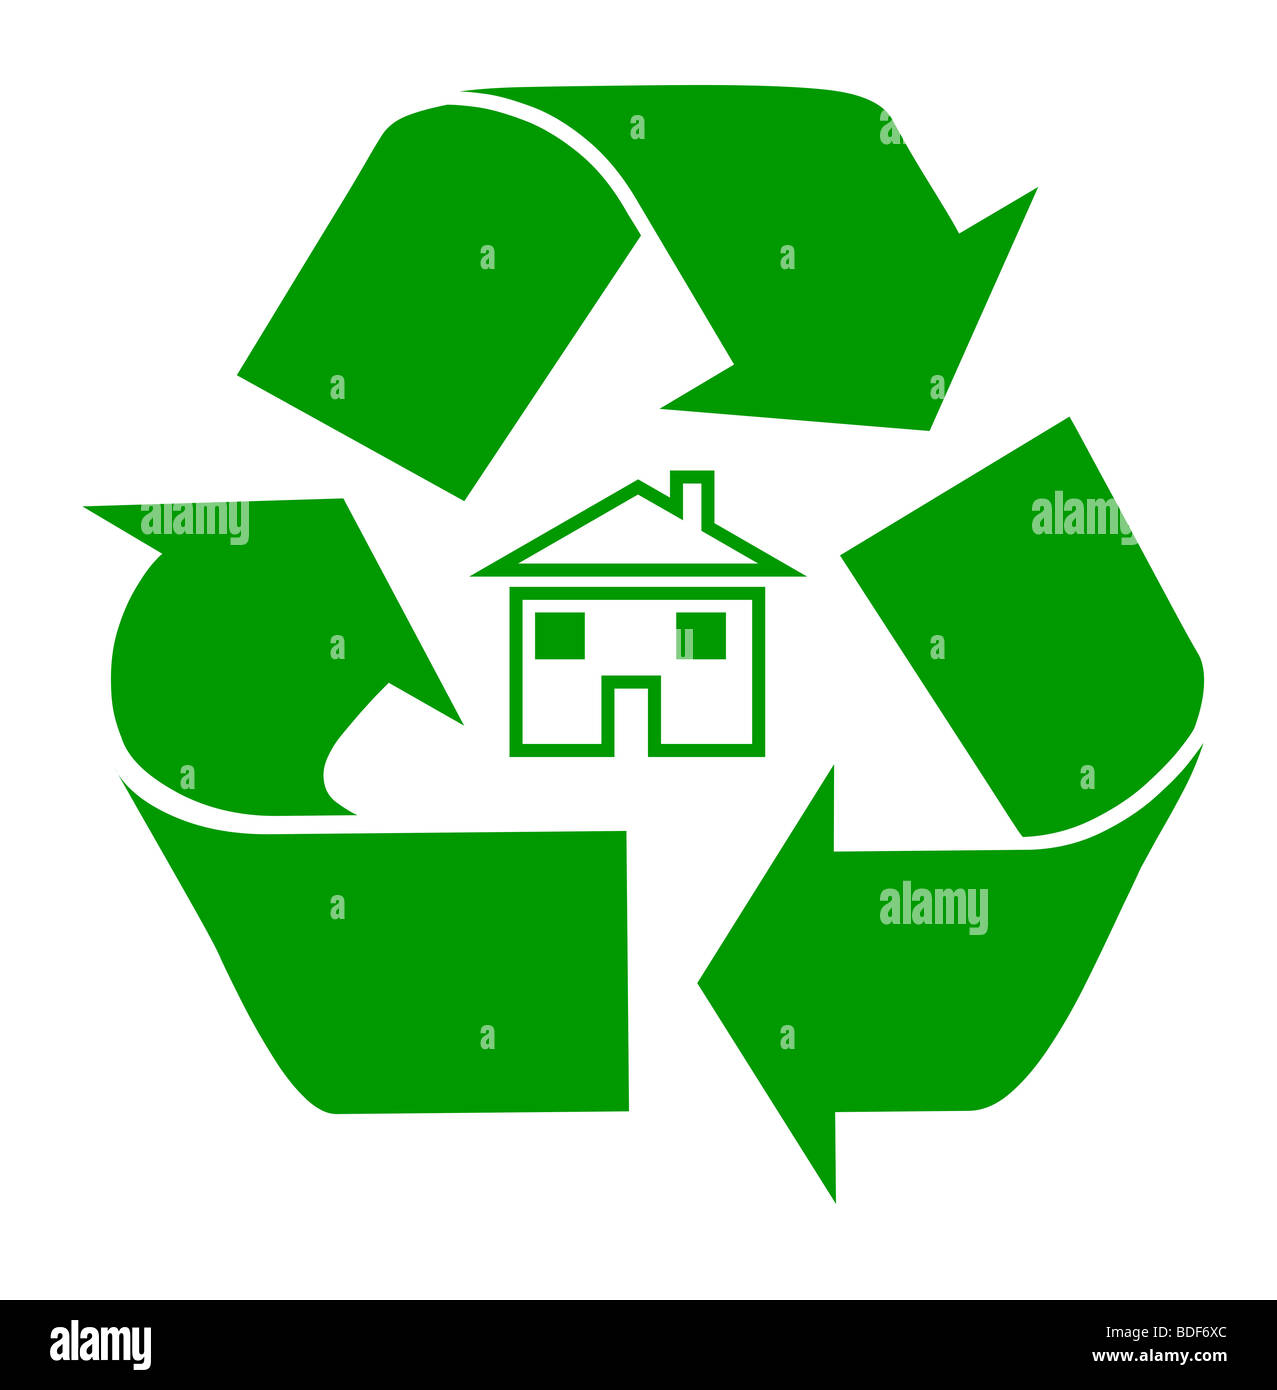 Silhouette of domestic house surrounded by recycling symbol, isolated on white background. - Stock Image